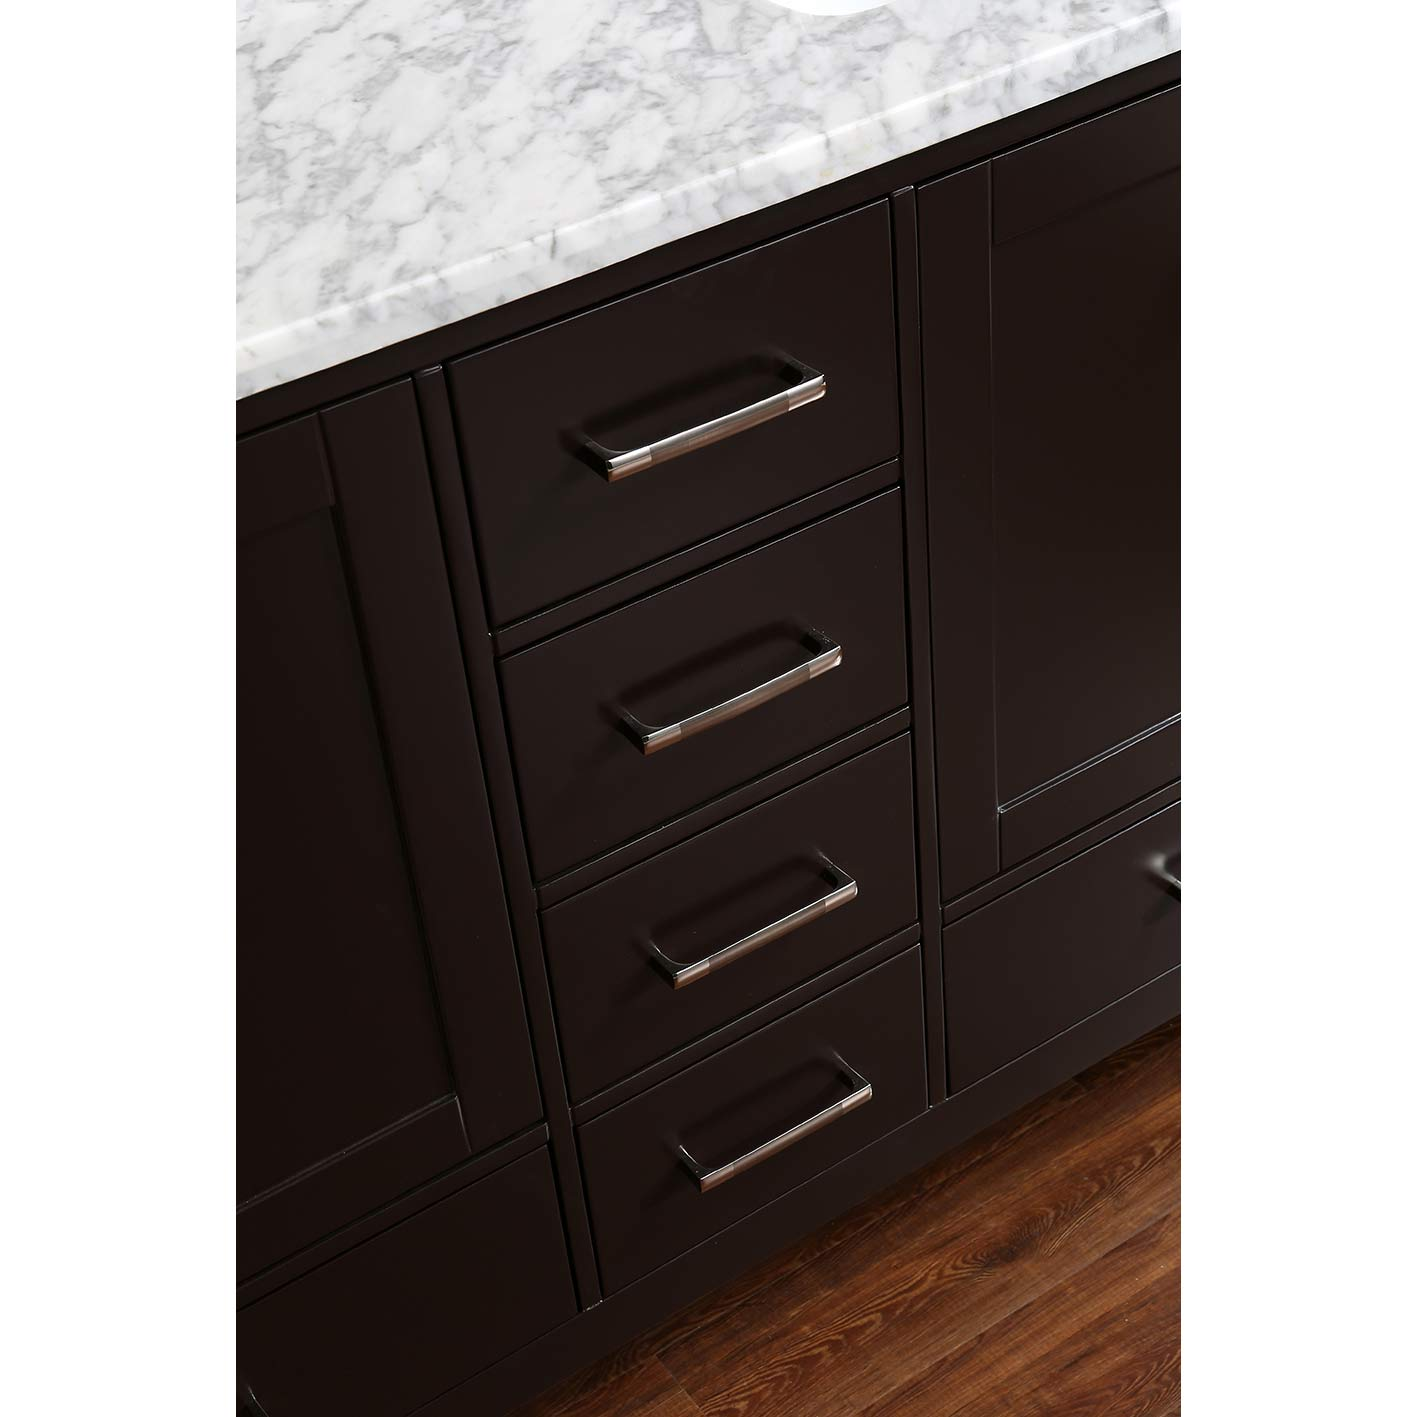 Buy vnicent 60 solid wood double bathroom vanity in for Bathroom cabinets 60